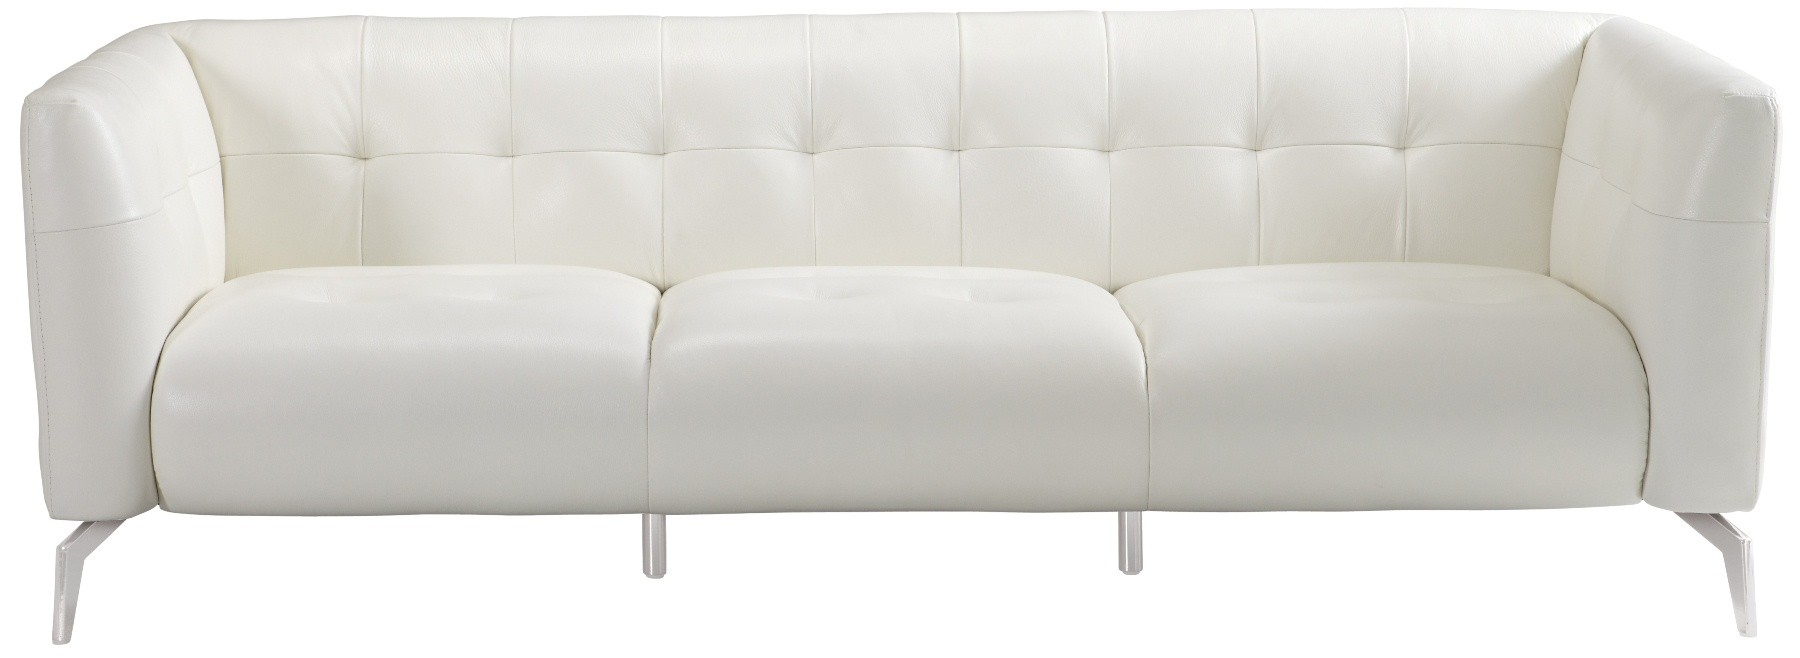 White couch Image